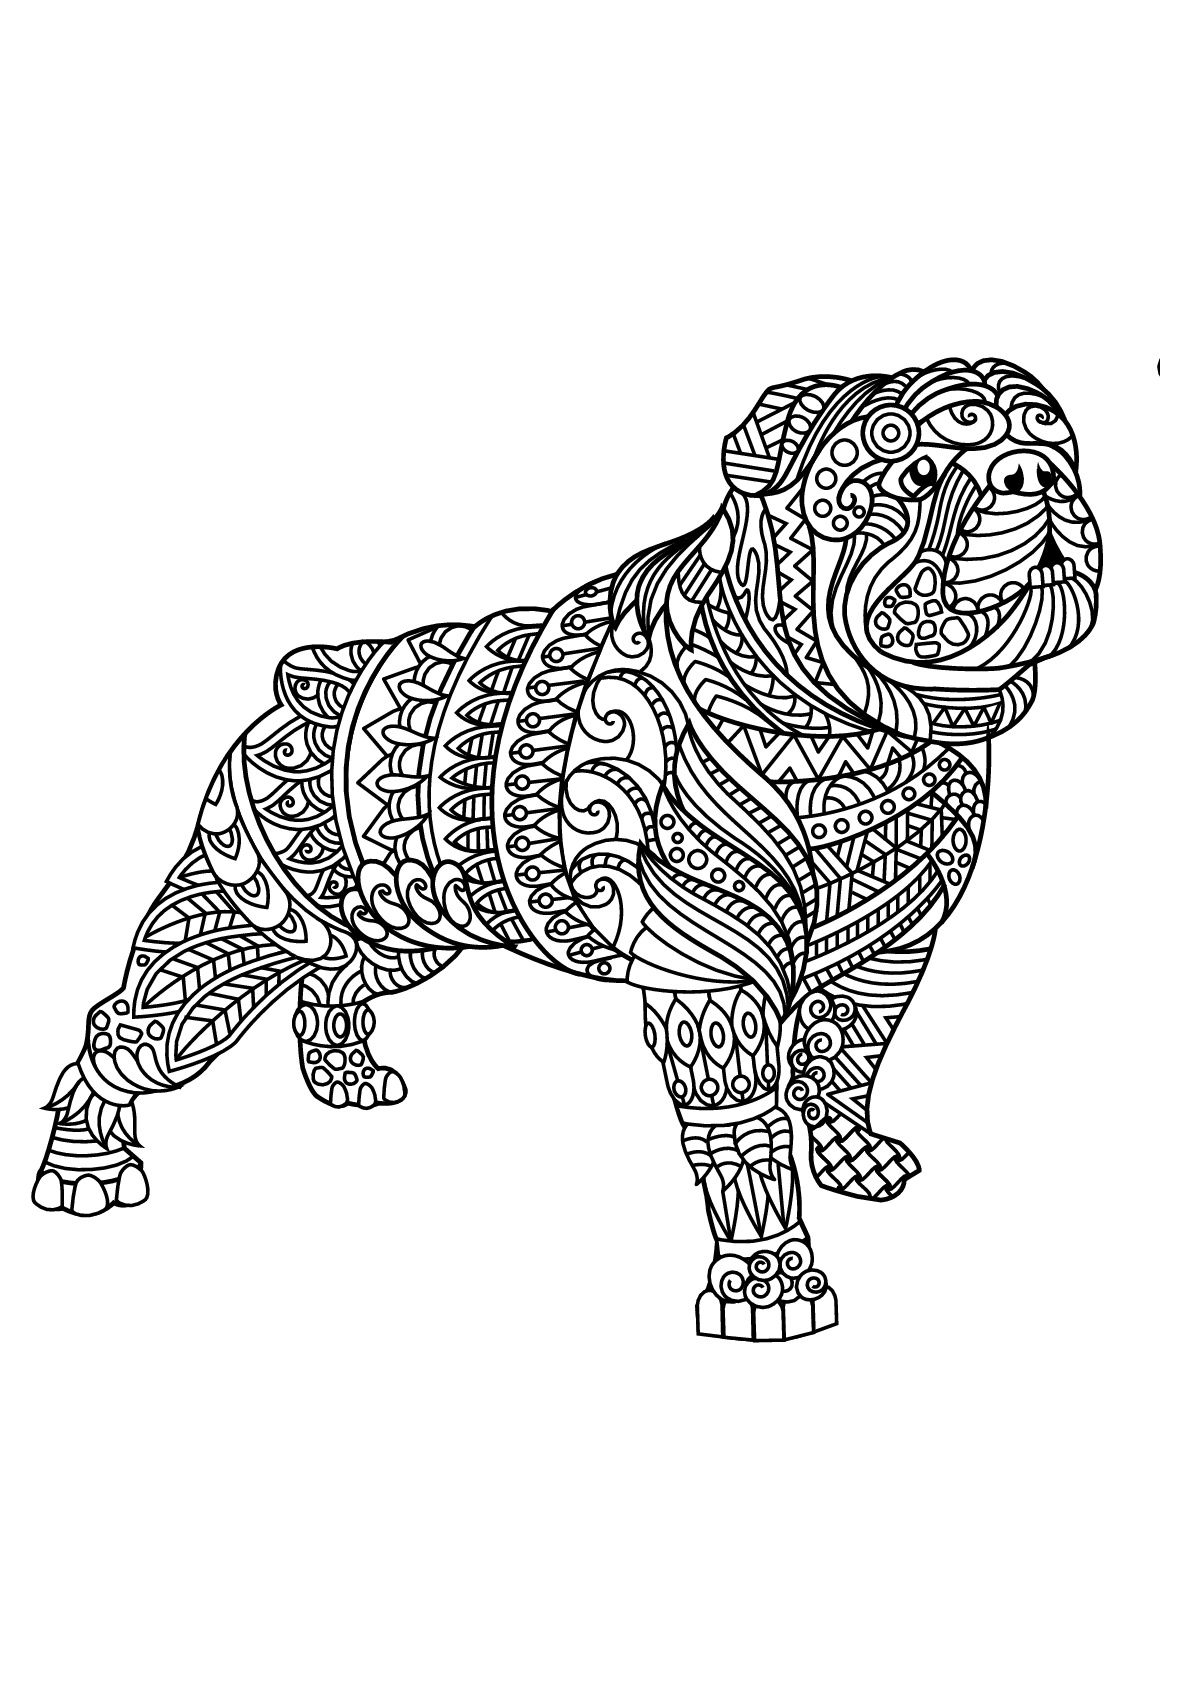 Free book bulldog 2 Dogs Coloring Pages for Adults